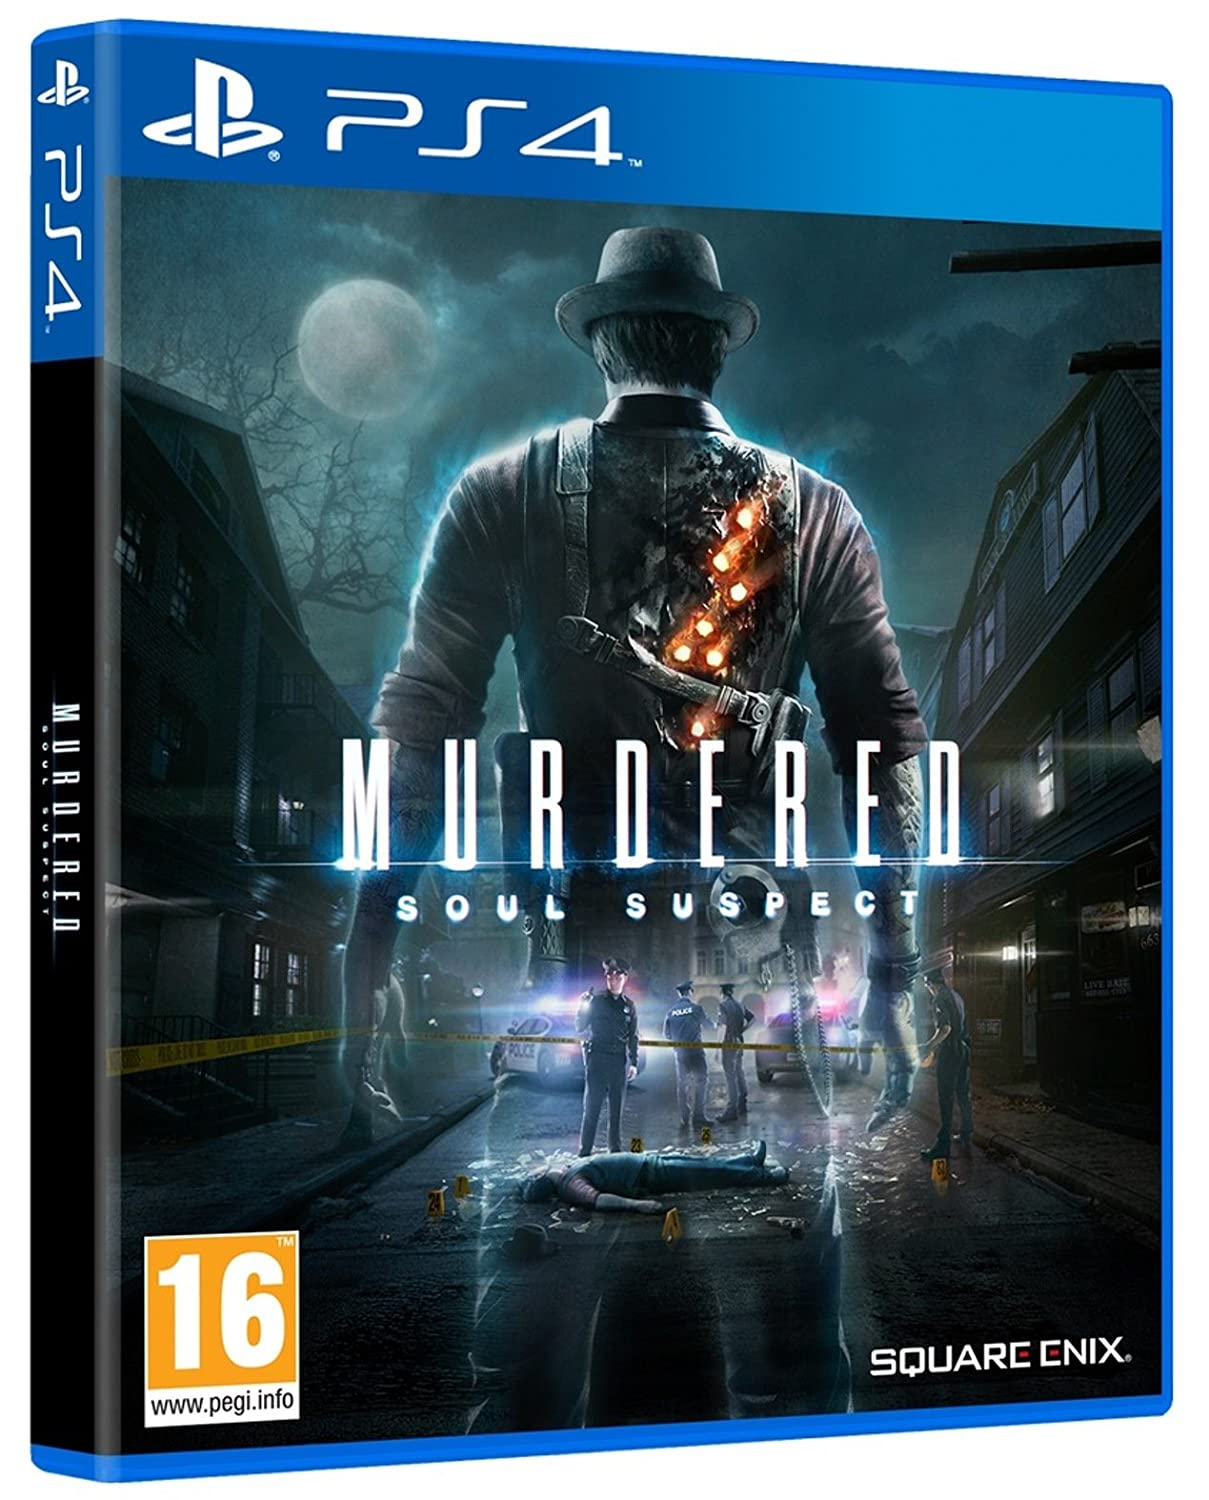 Murdered: Soul Suspect STEAM CD-KEY